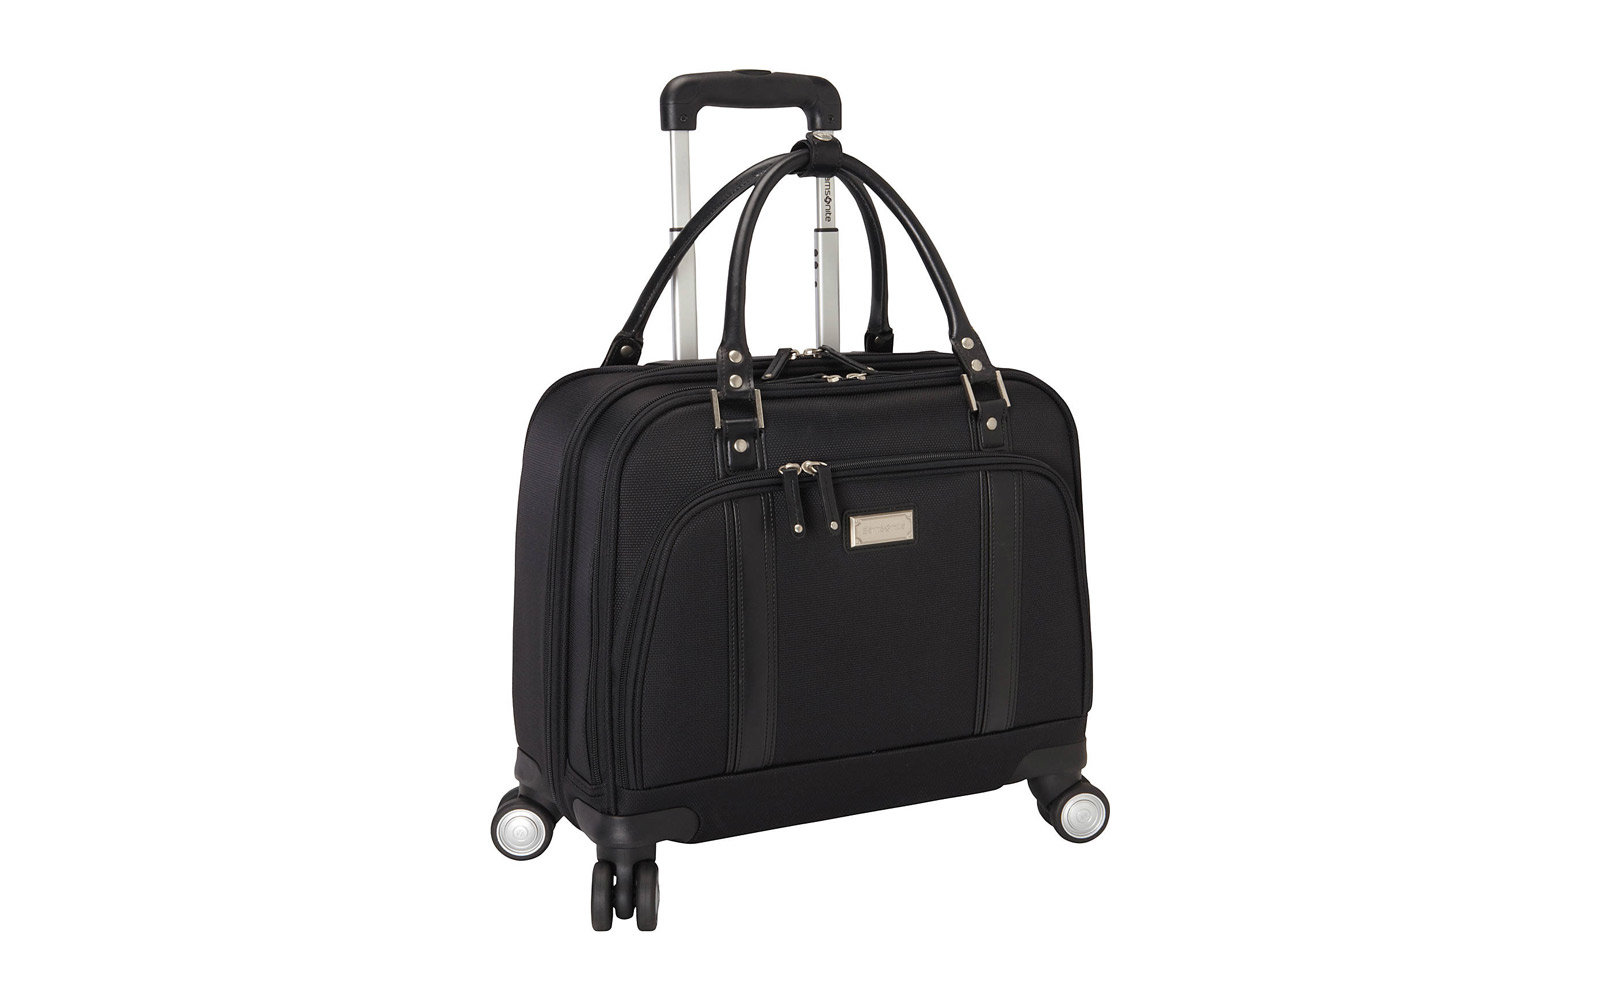 samsonite tote bag with wheels